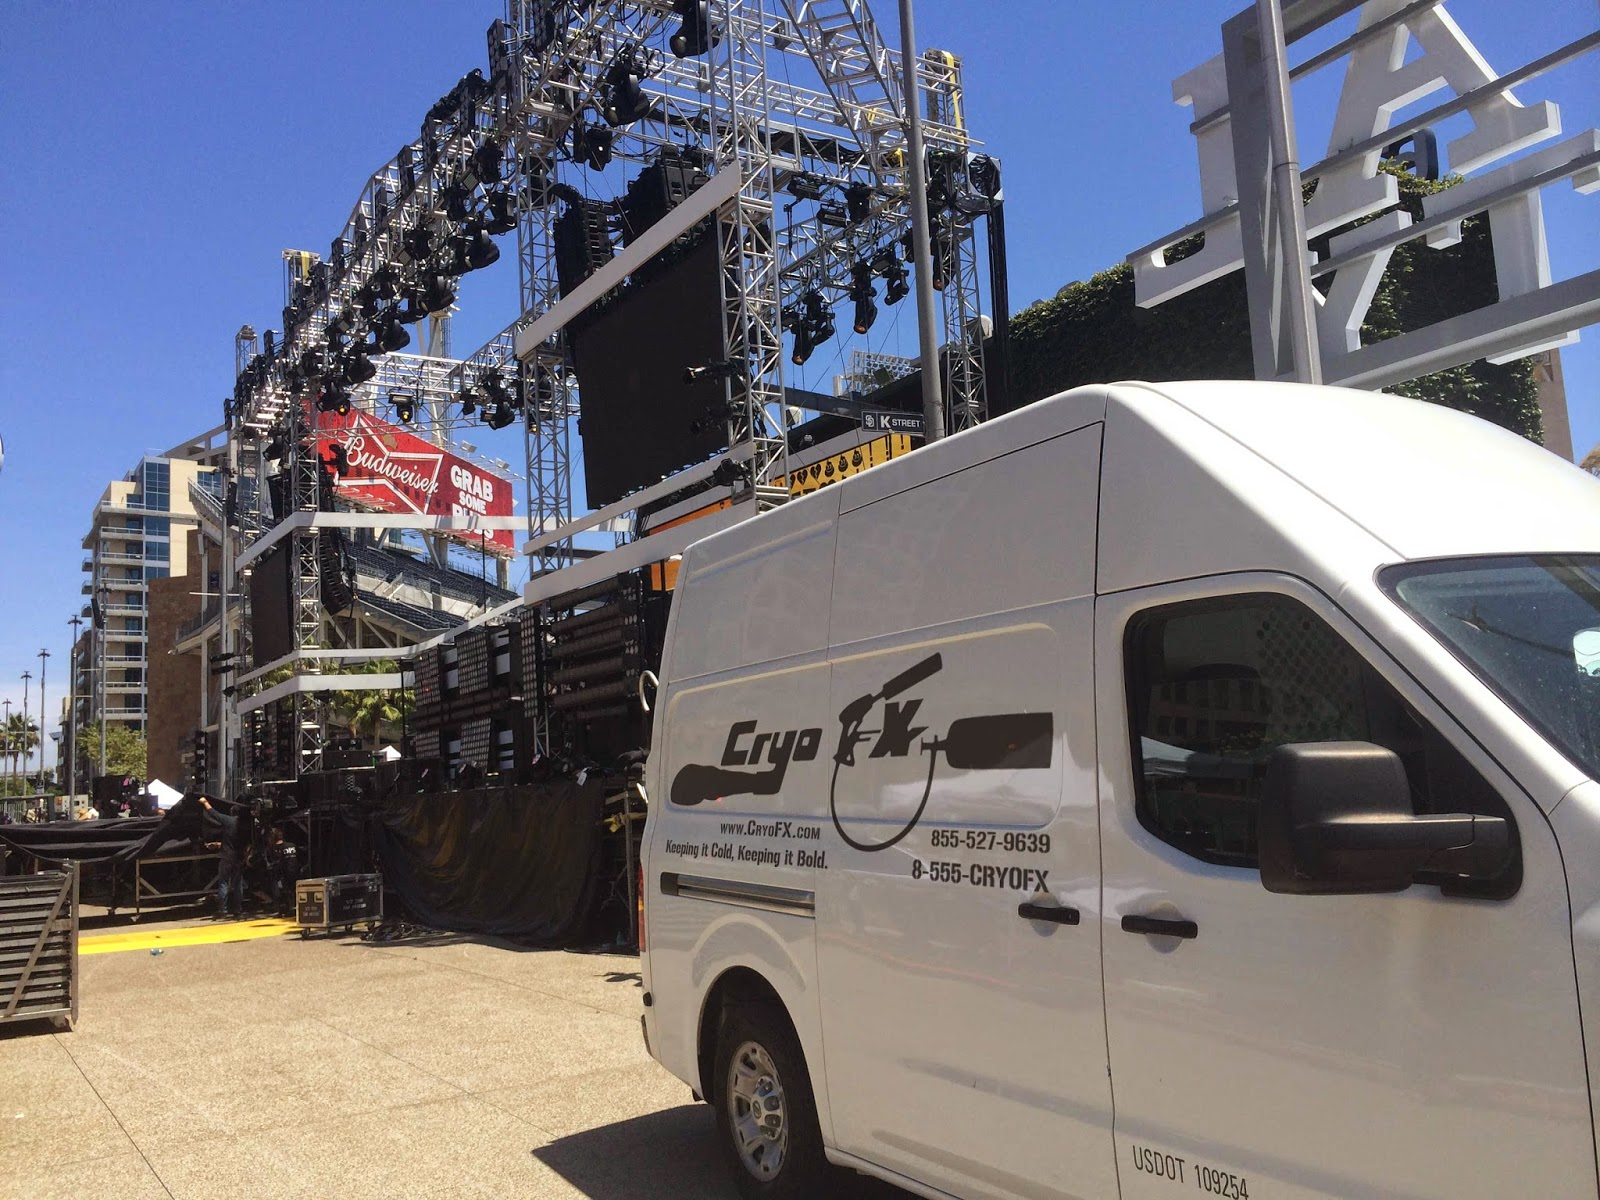 CryoFX setting up Co2 Jets for MTV Fandom Awards 2014